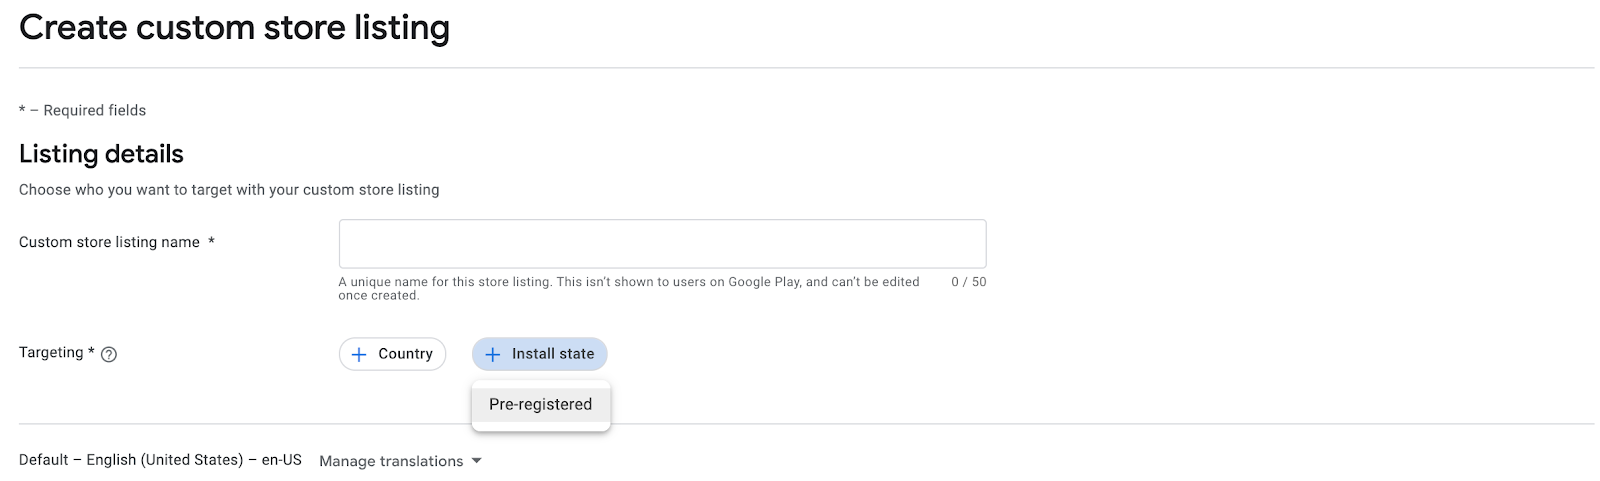 Google Play Console custom store listings creation interface